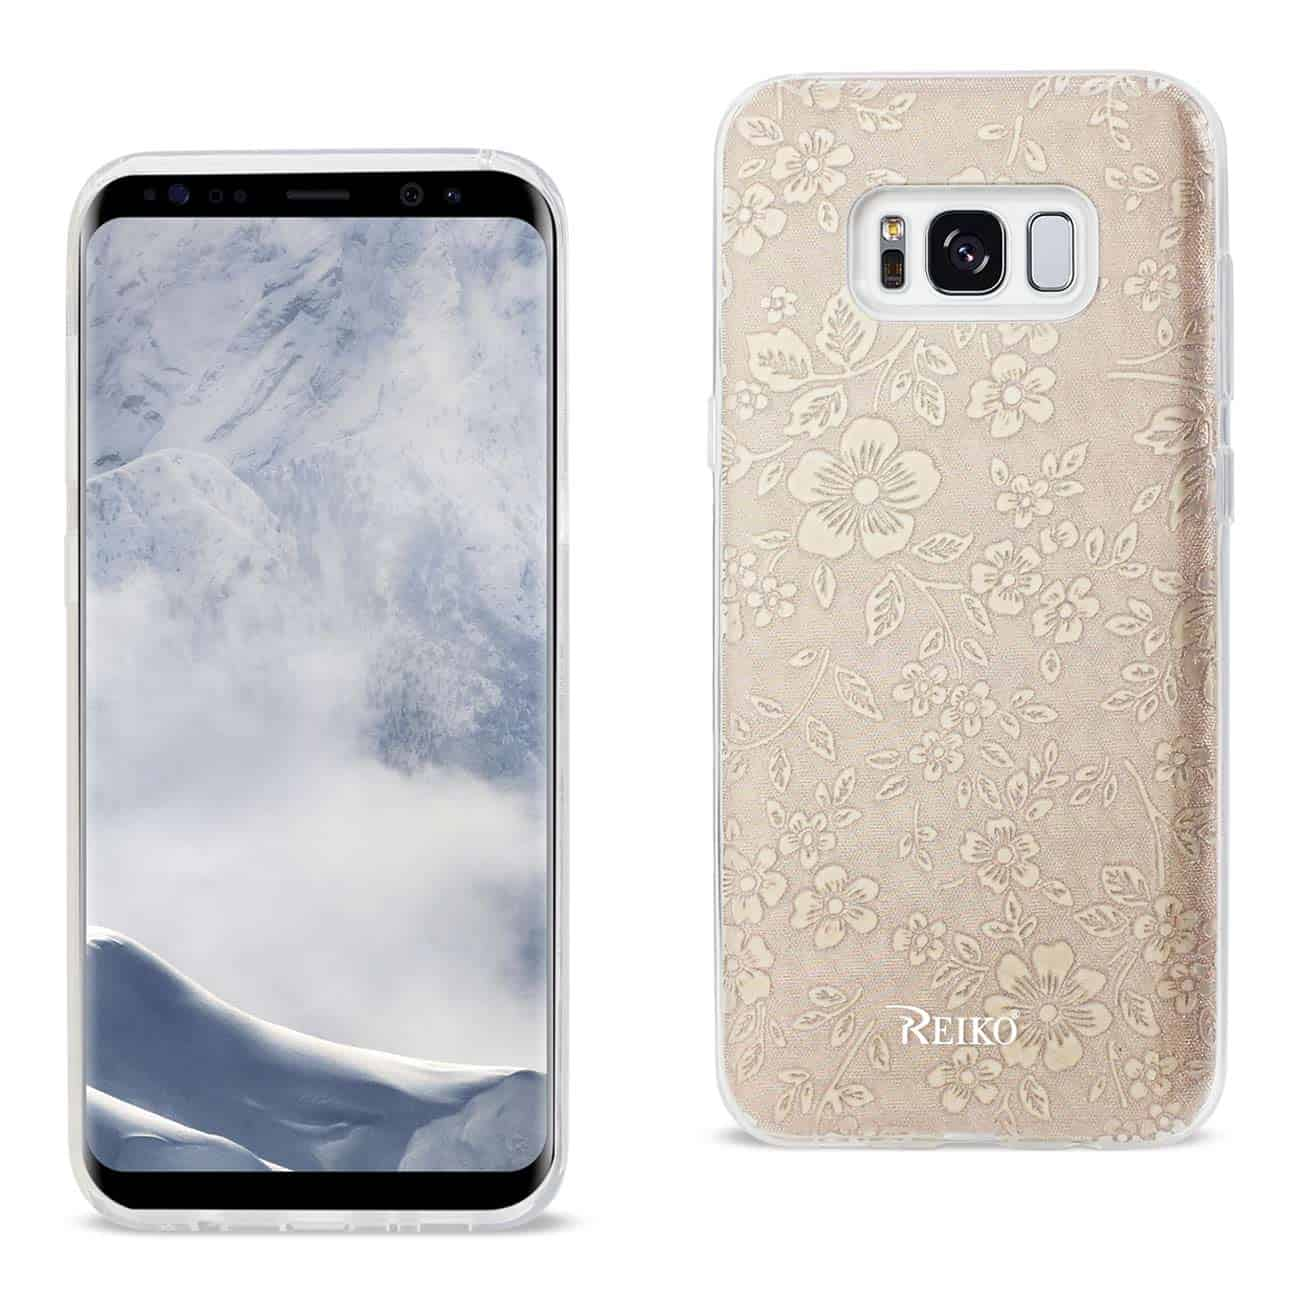 SAMSUNG GALAXY S8 EDGE/ S8 PLUS SHINE GLITTER SHIMMER PLUM BLOSSOM HYBRID CASE IN GOLD